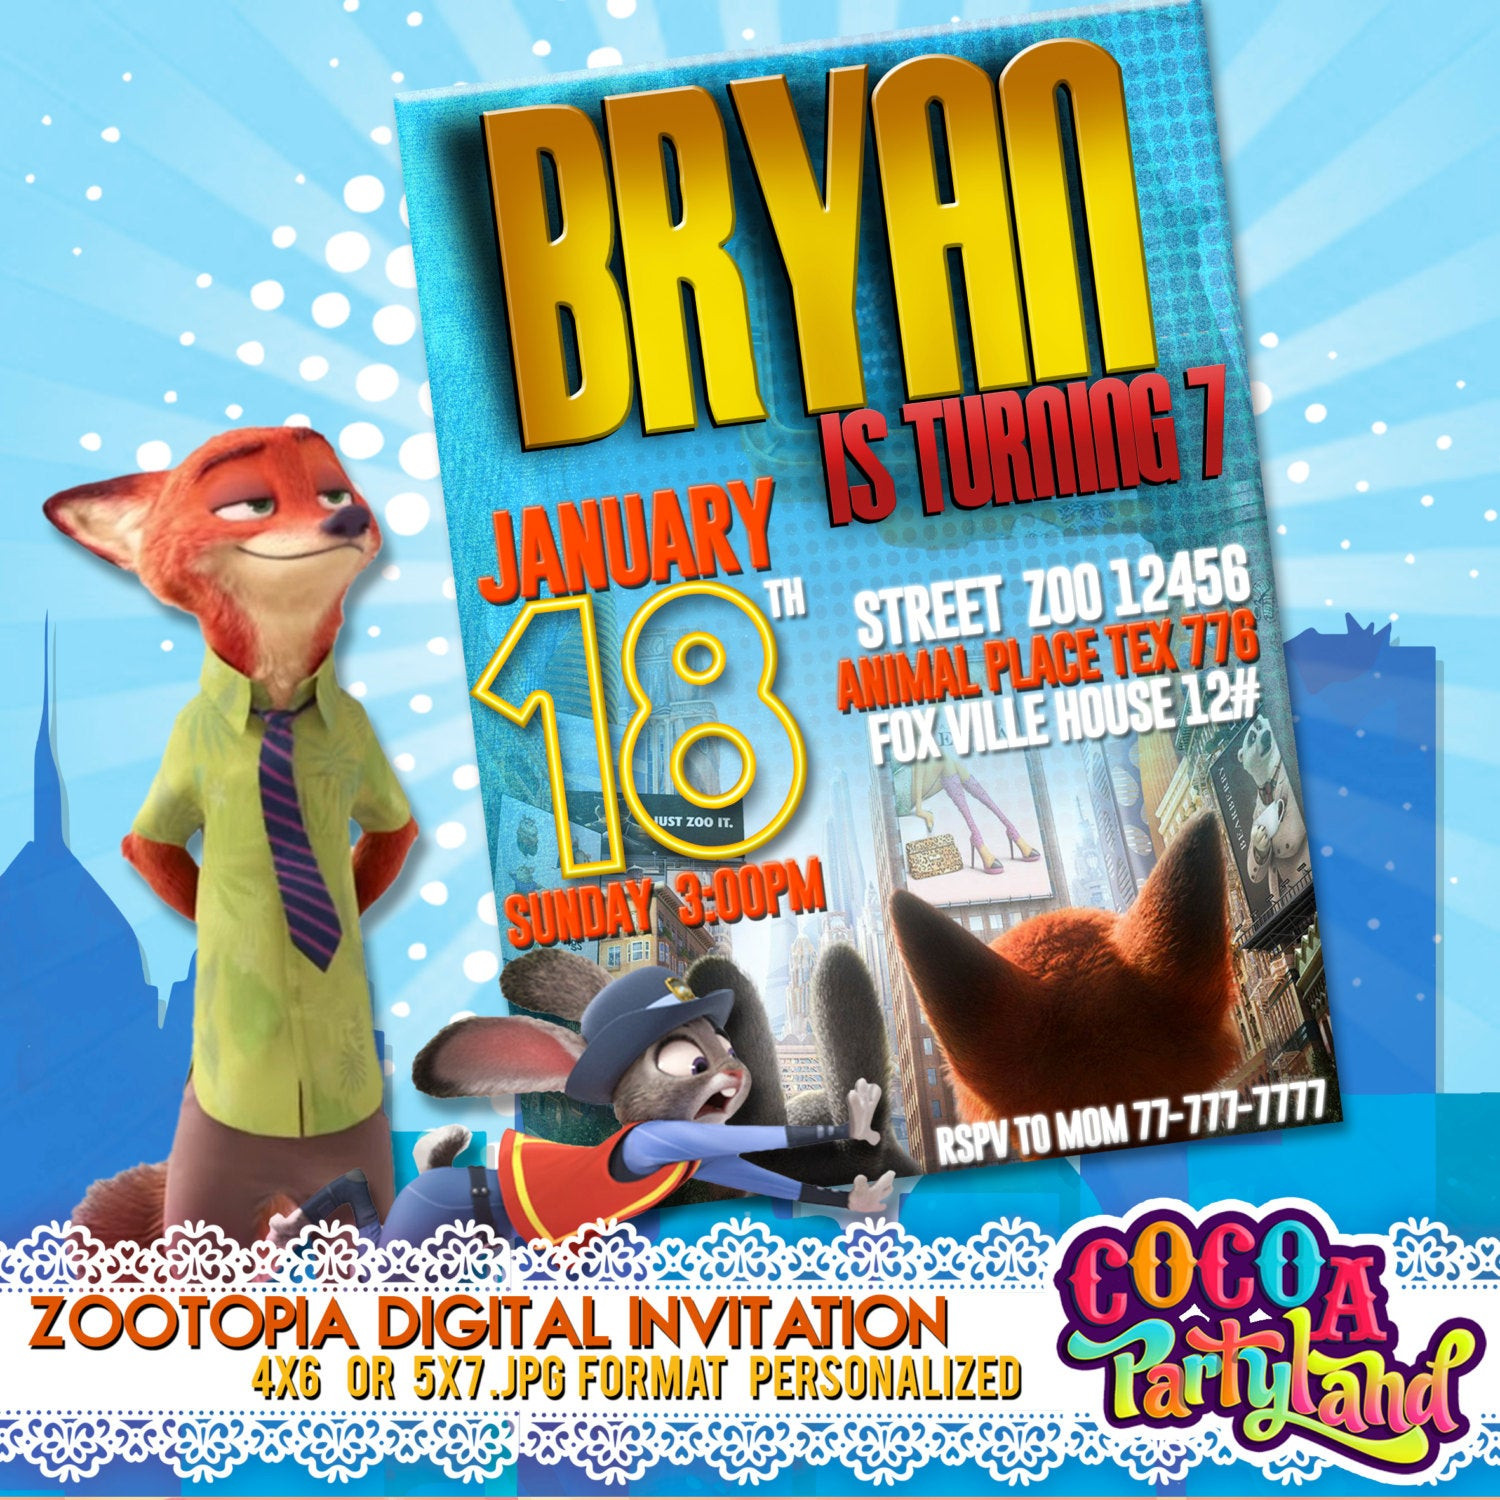 Best ideas about Zootopia Birthday Invitations . Save or Pin Zootopia Digital Invitation Zootopia by CocoaParty on Etsy Now.